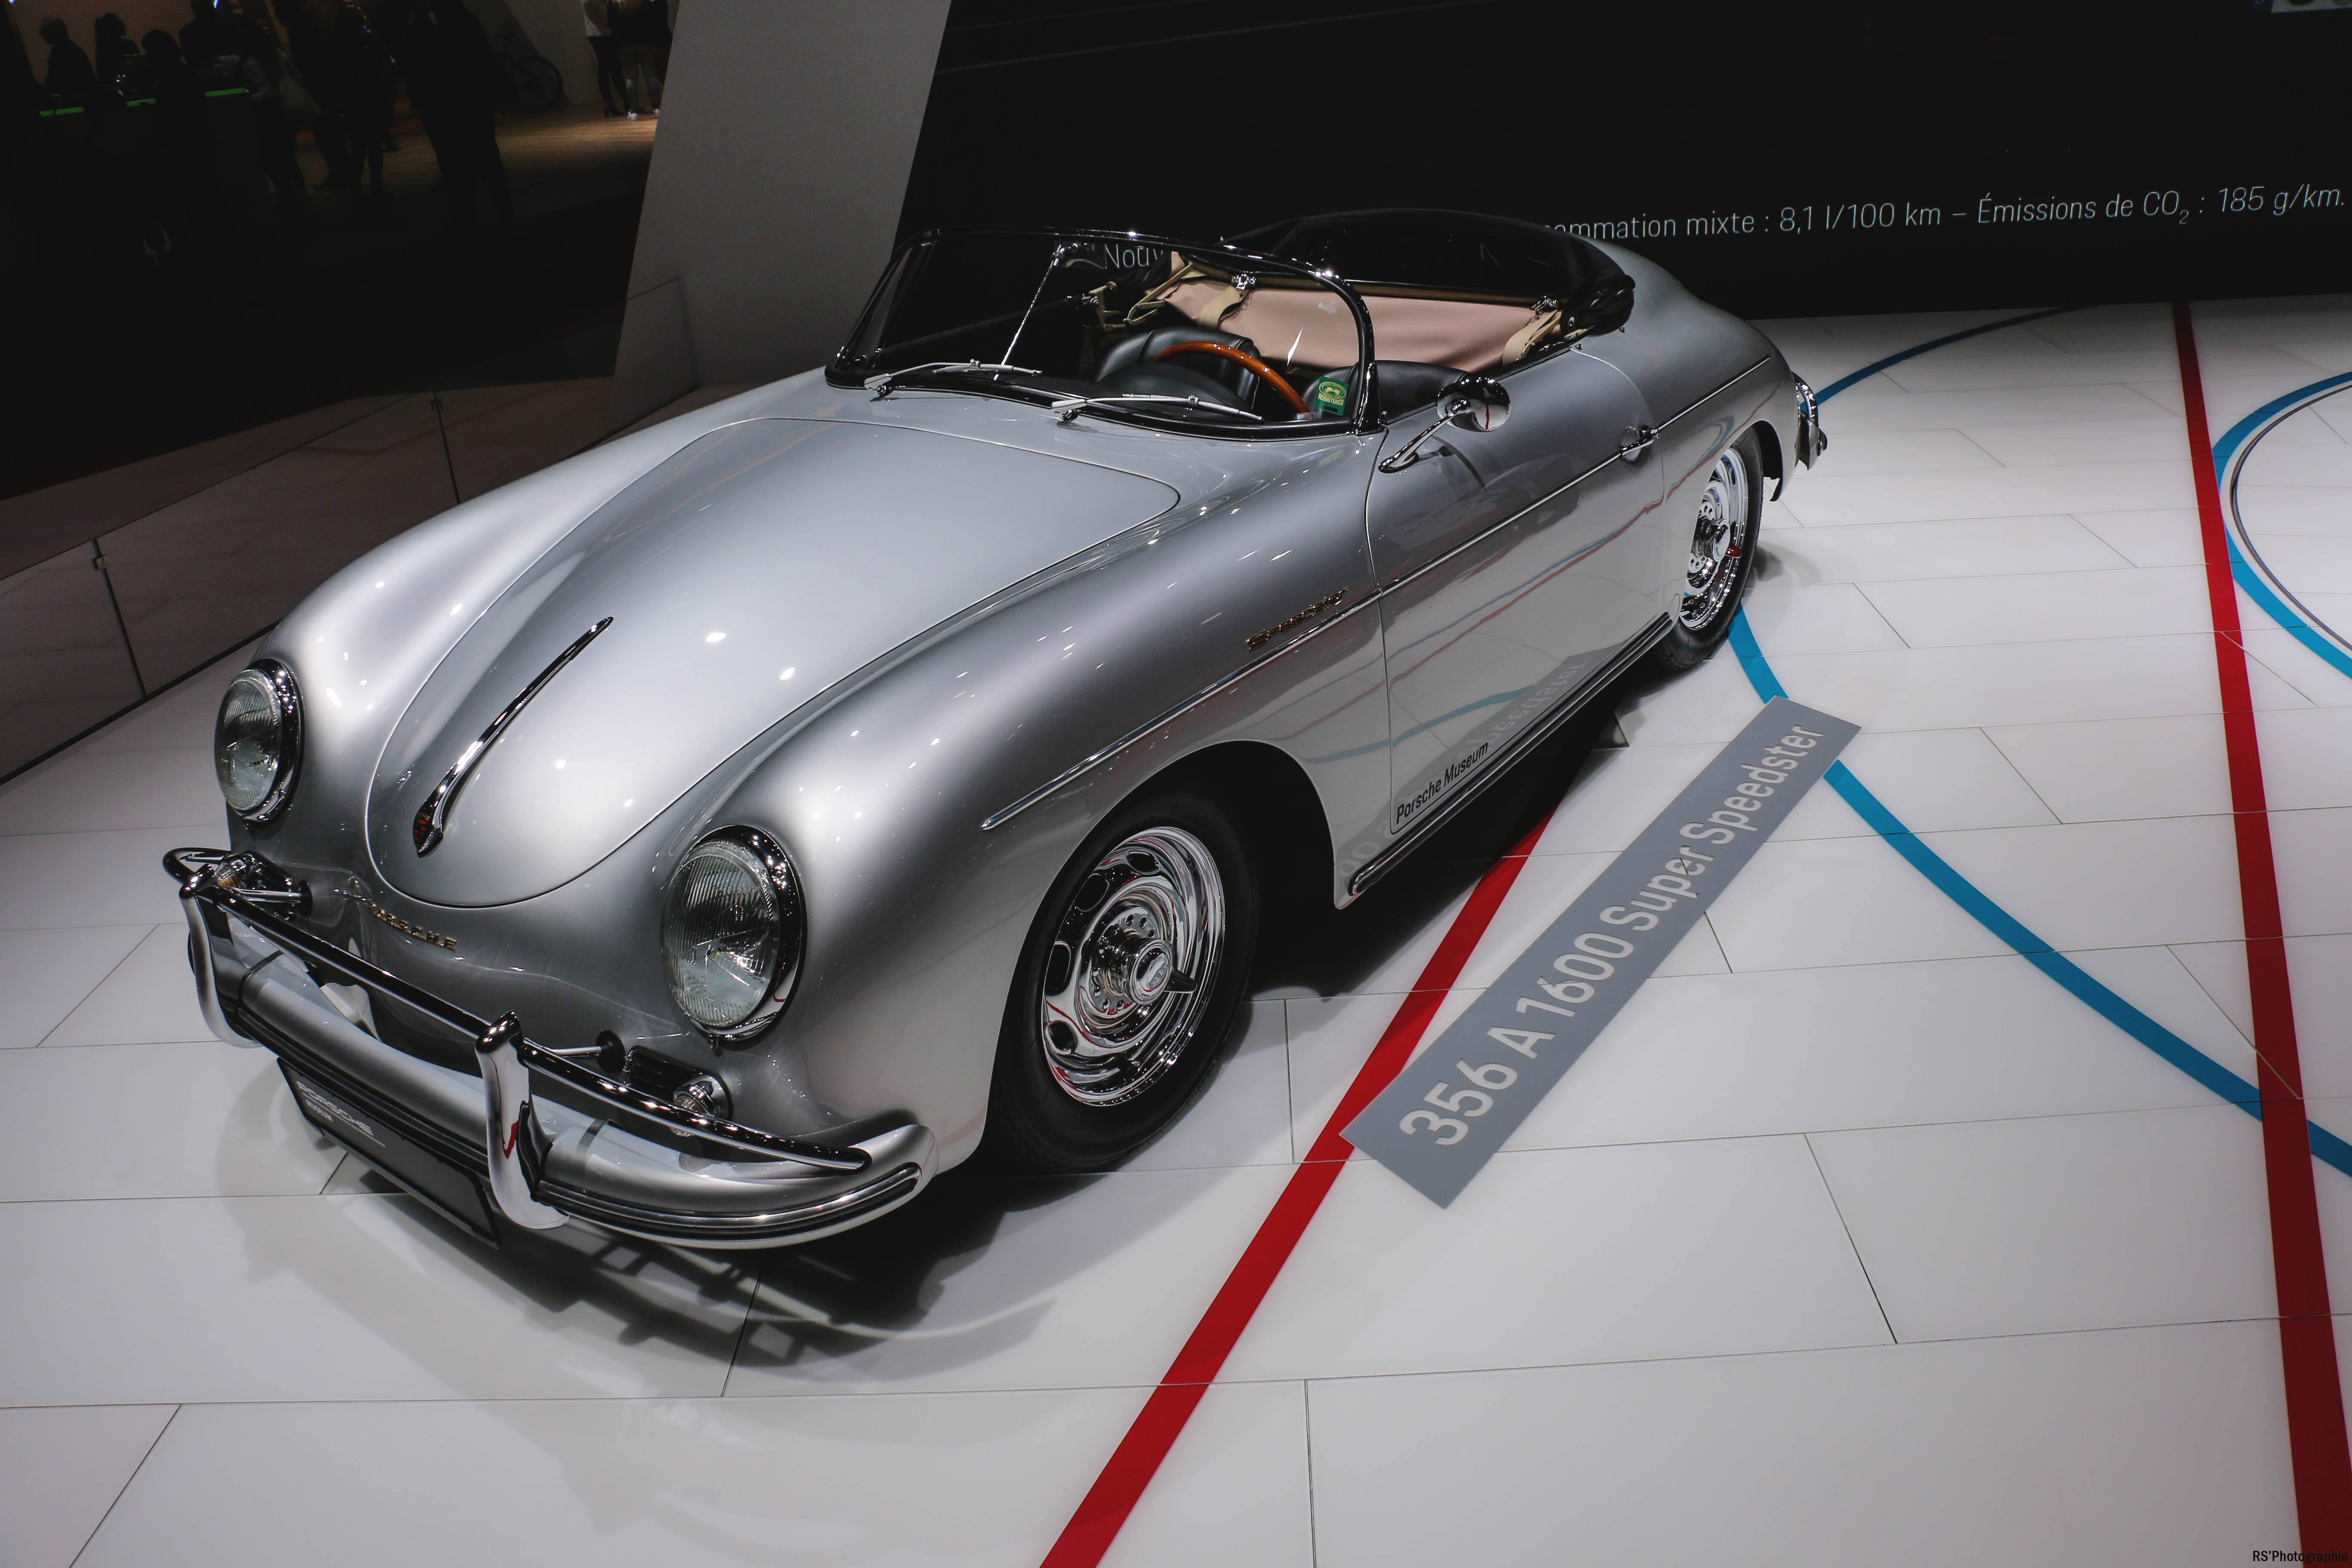 Porsche 356 A1600 Super Speedster - Paris Motor Show - 2018 - Mondial Auto - photo by Arnaud Demasier RS Photographie